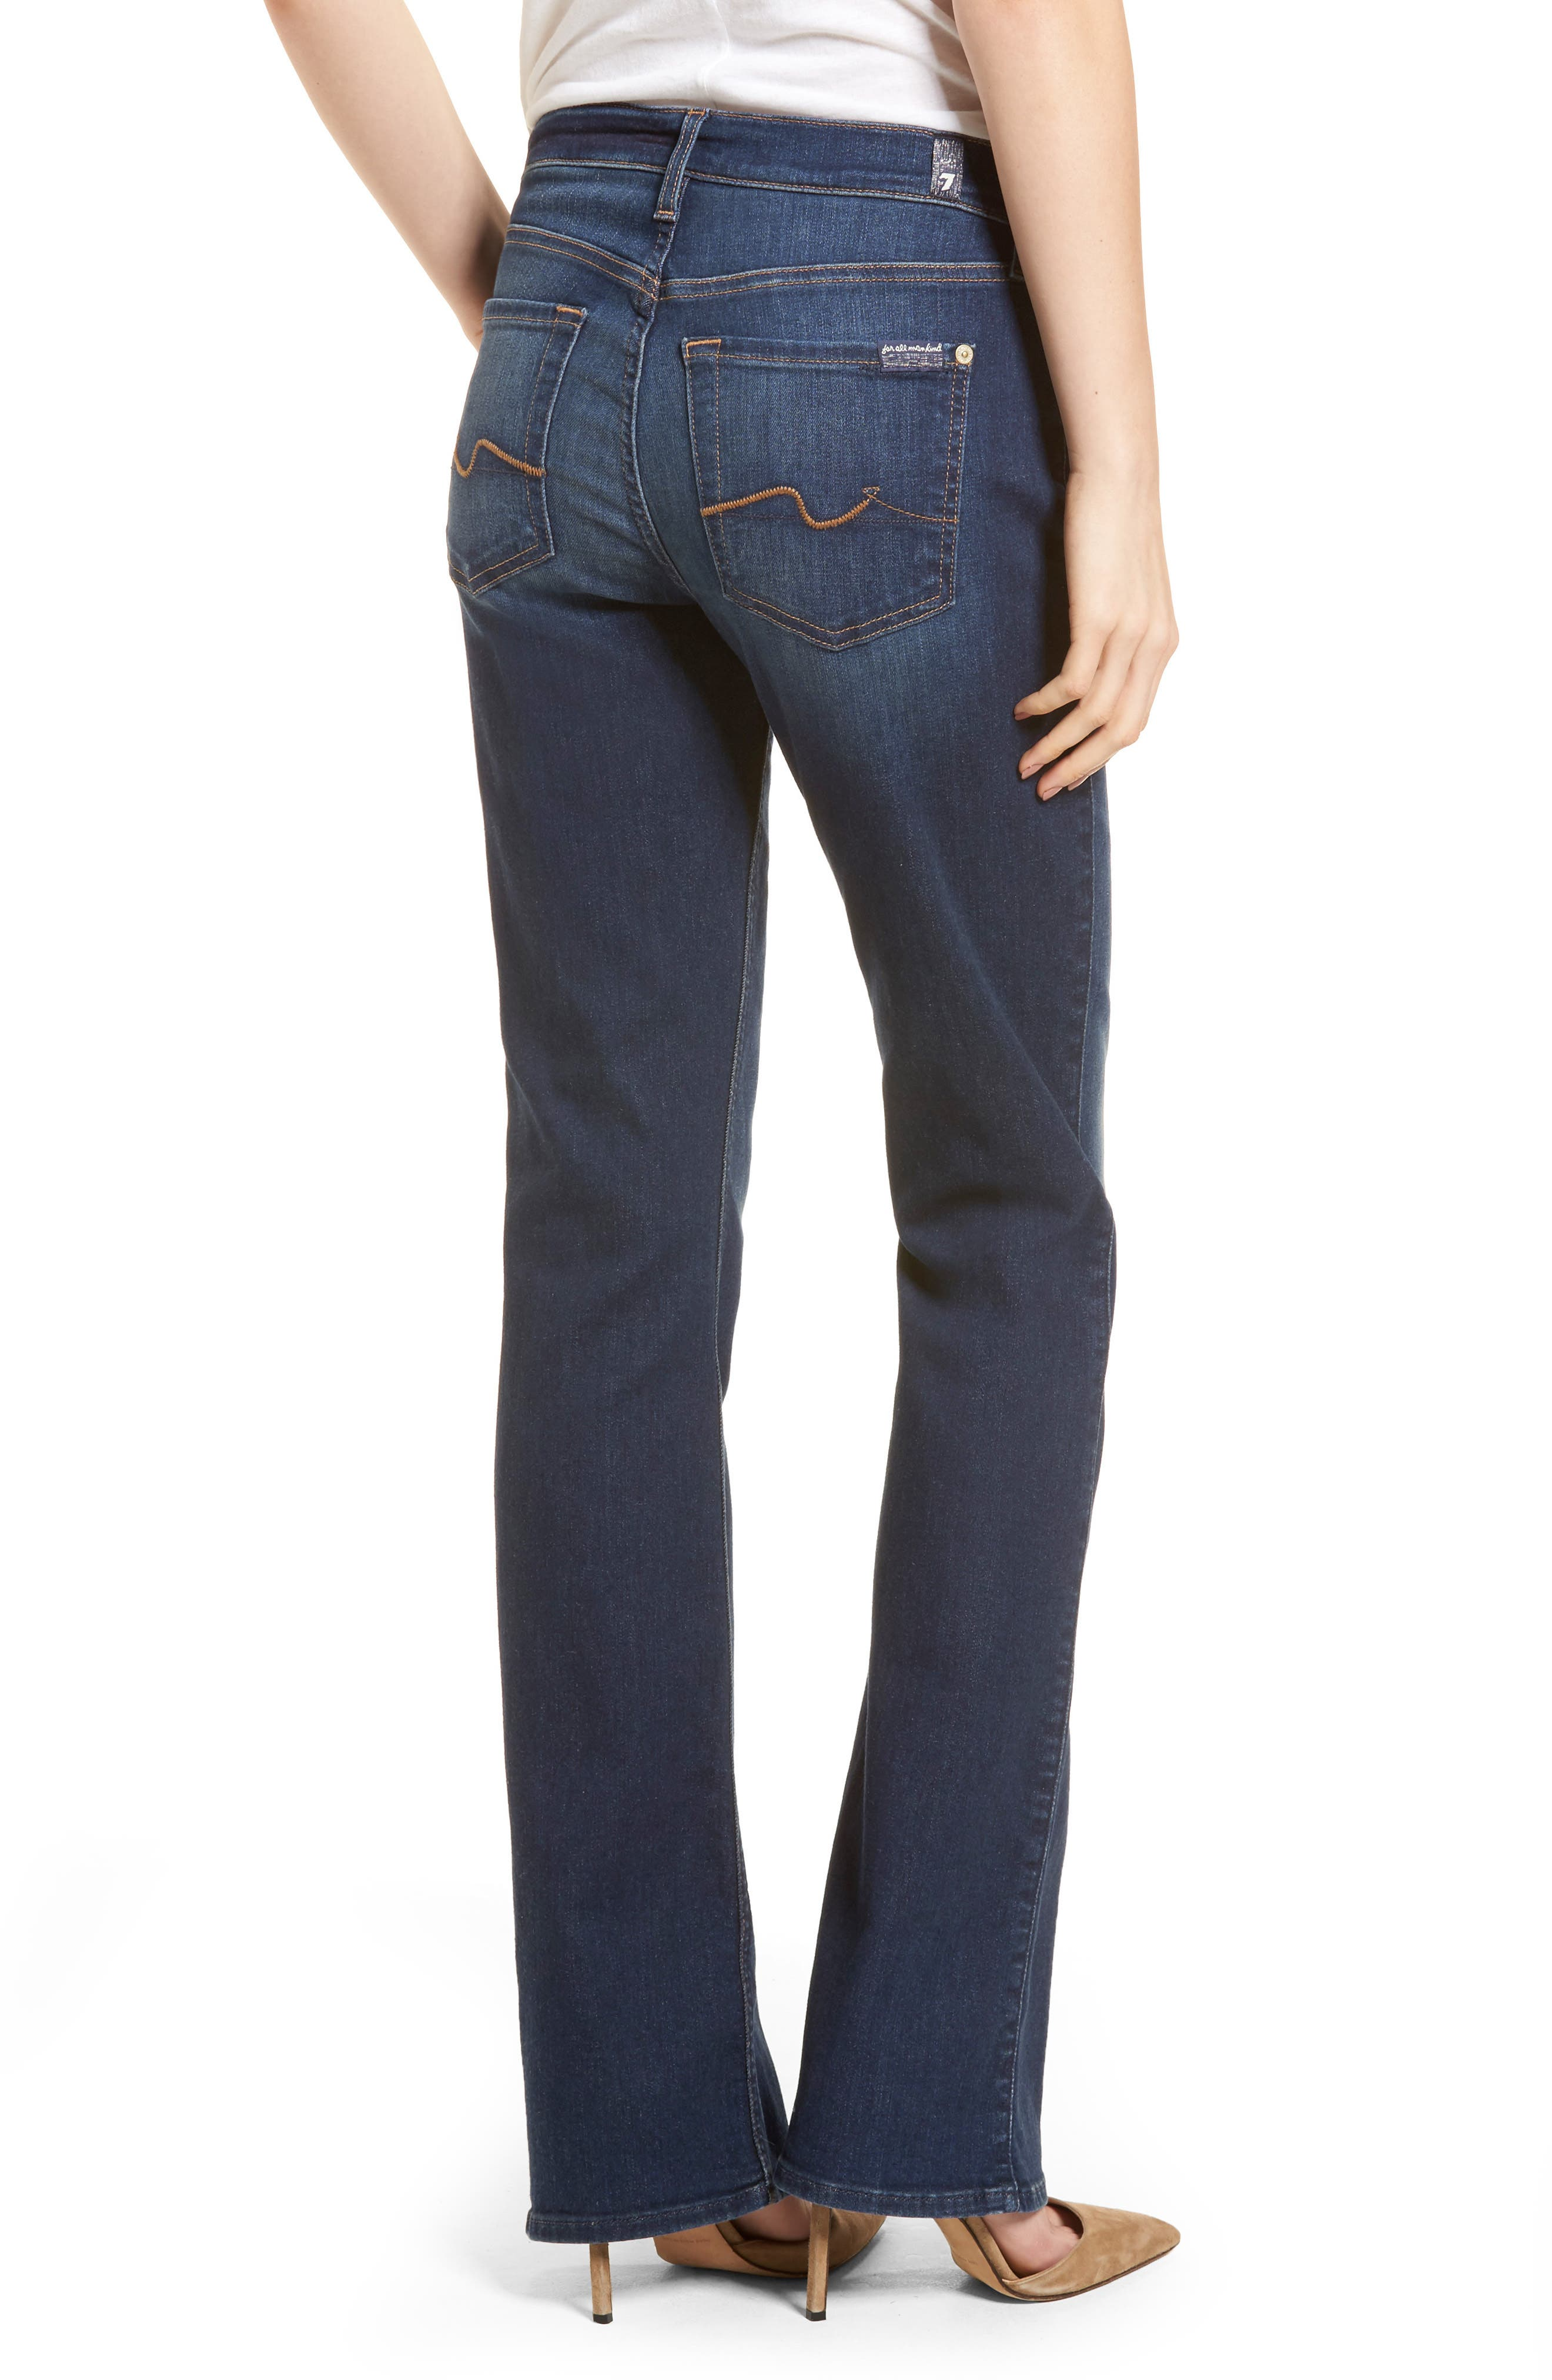 b(air) Iconic Bootcut Jeans,                             Alternate thumbnail 2, color,                             MORENO